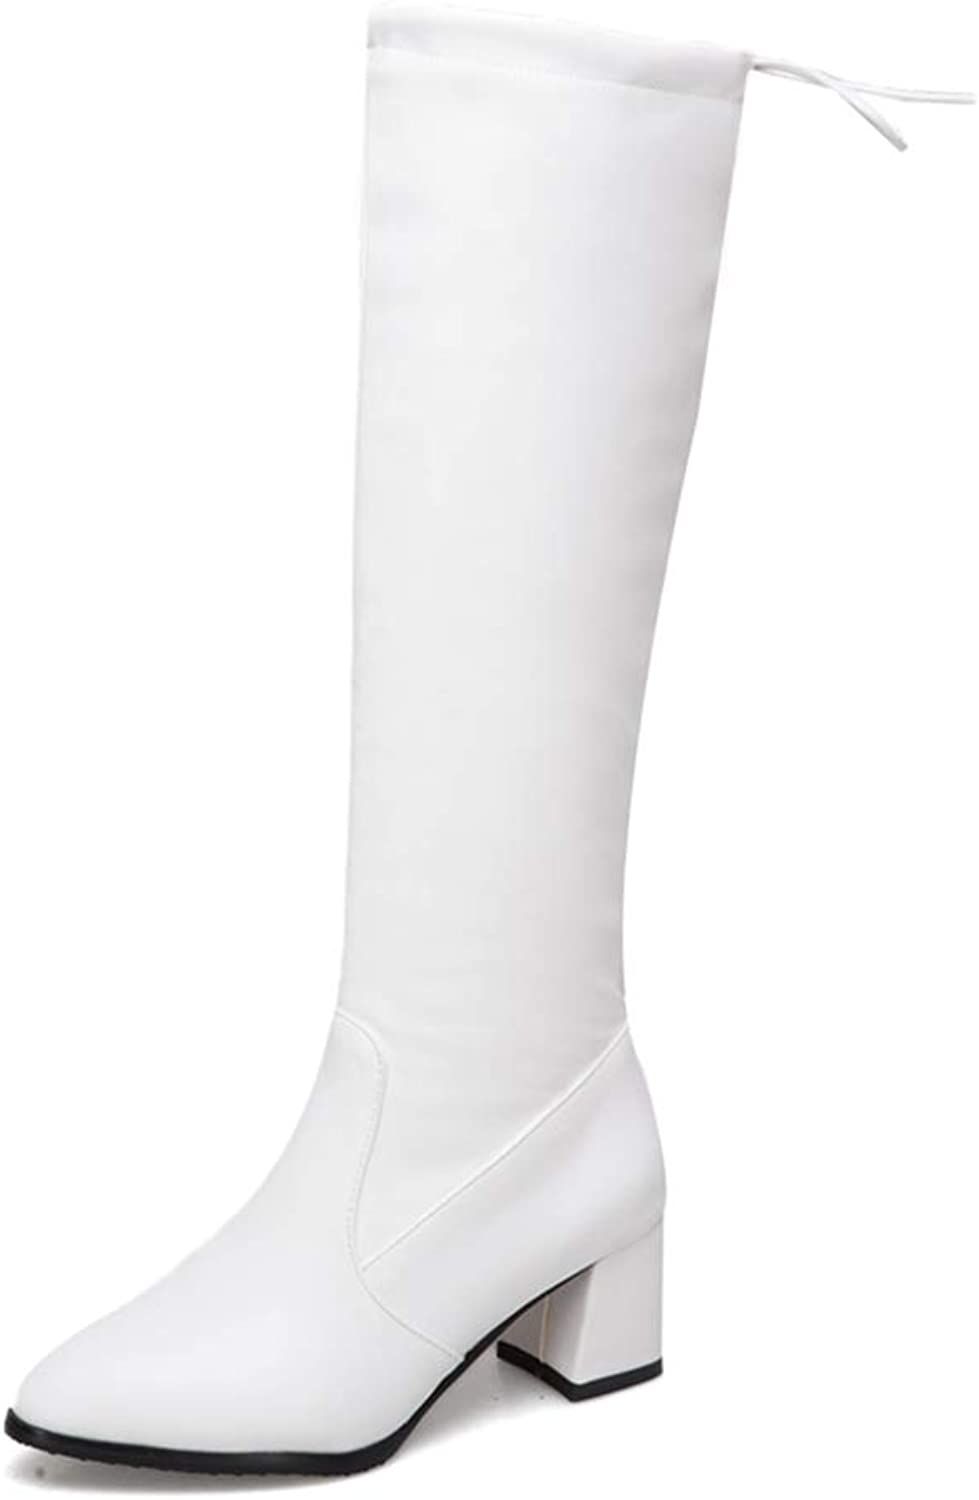 Hoxekle Women Knee High Boots Slip On Mid Chunky Heel Pointed Toe Winter Warm Ladies Long Boots